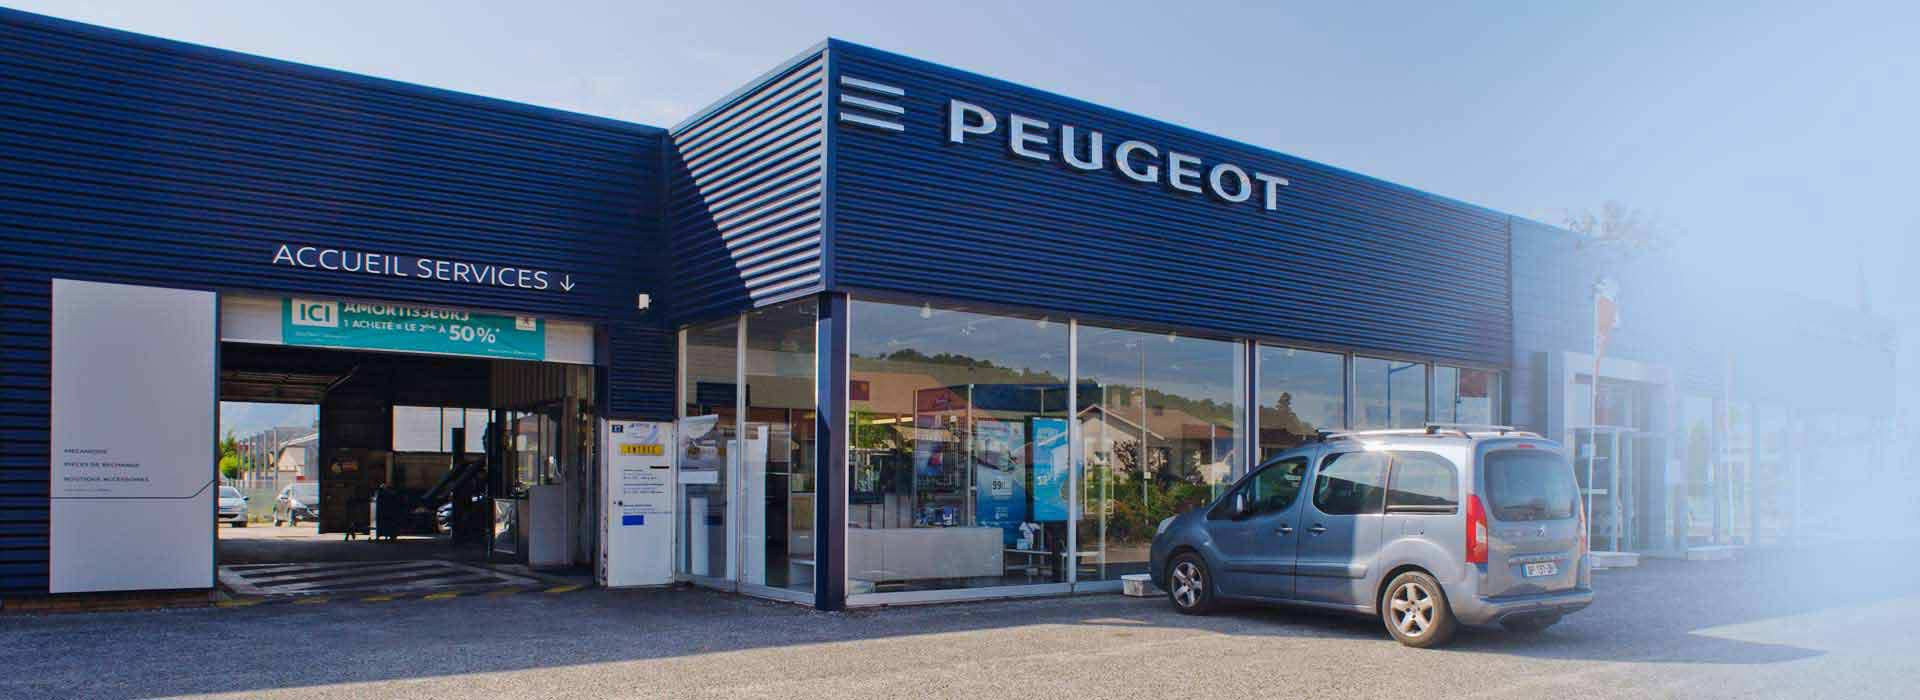 Peugeot saint marcellin concessionnaire garage is re 38 for Garage renault st marcel